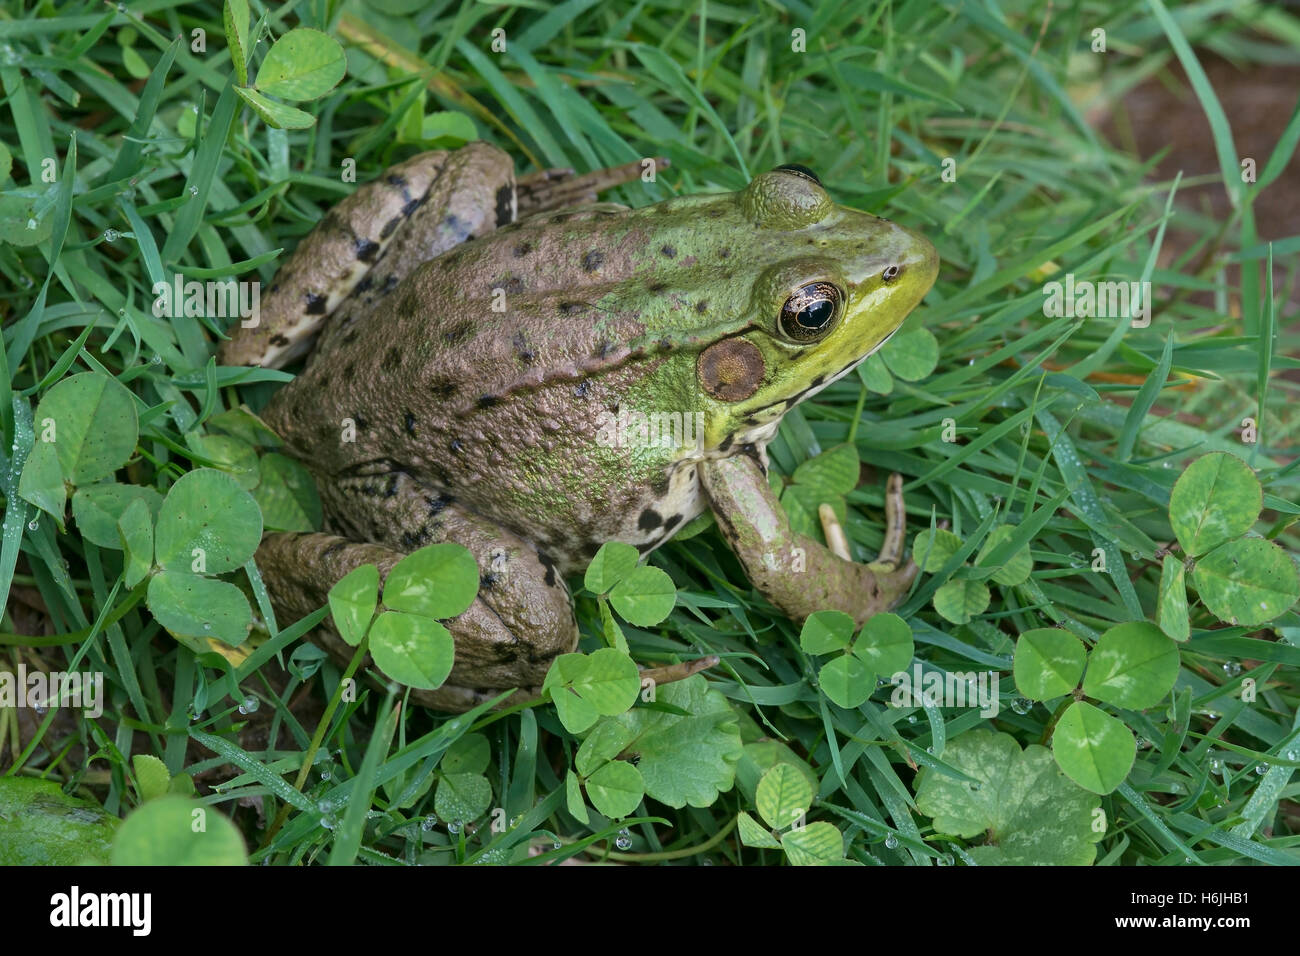 Green Frog Rana clamitans sitting in grass and clover, Eastern USA - Stock Image